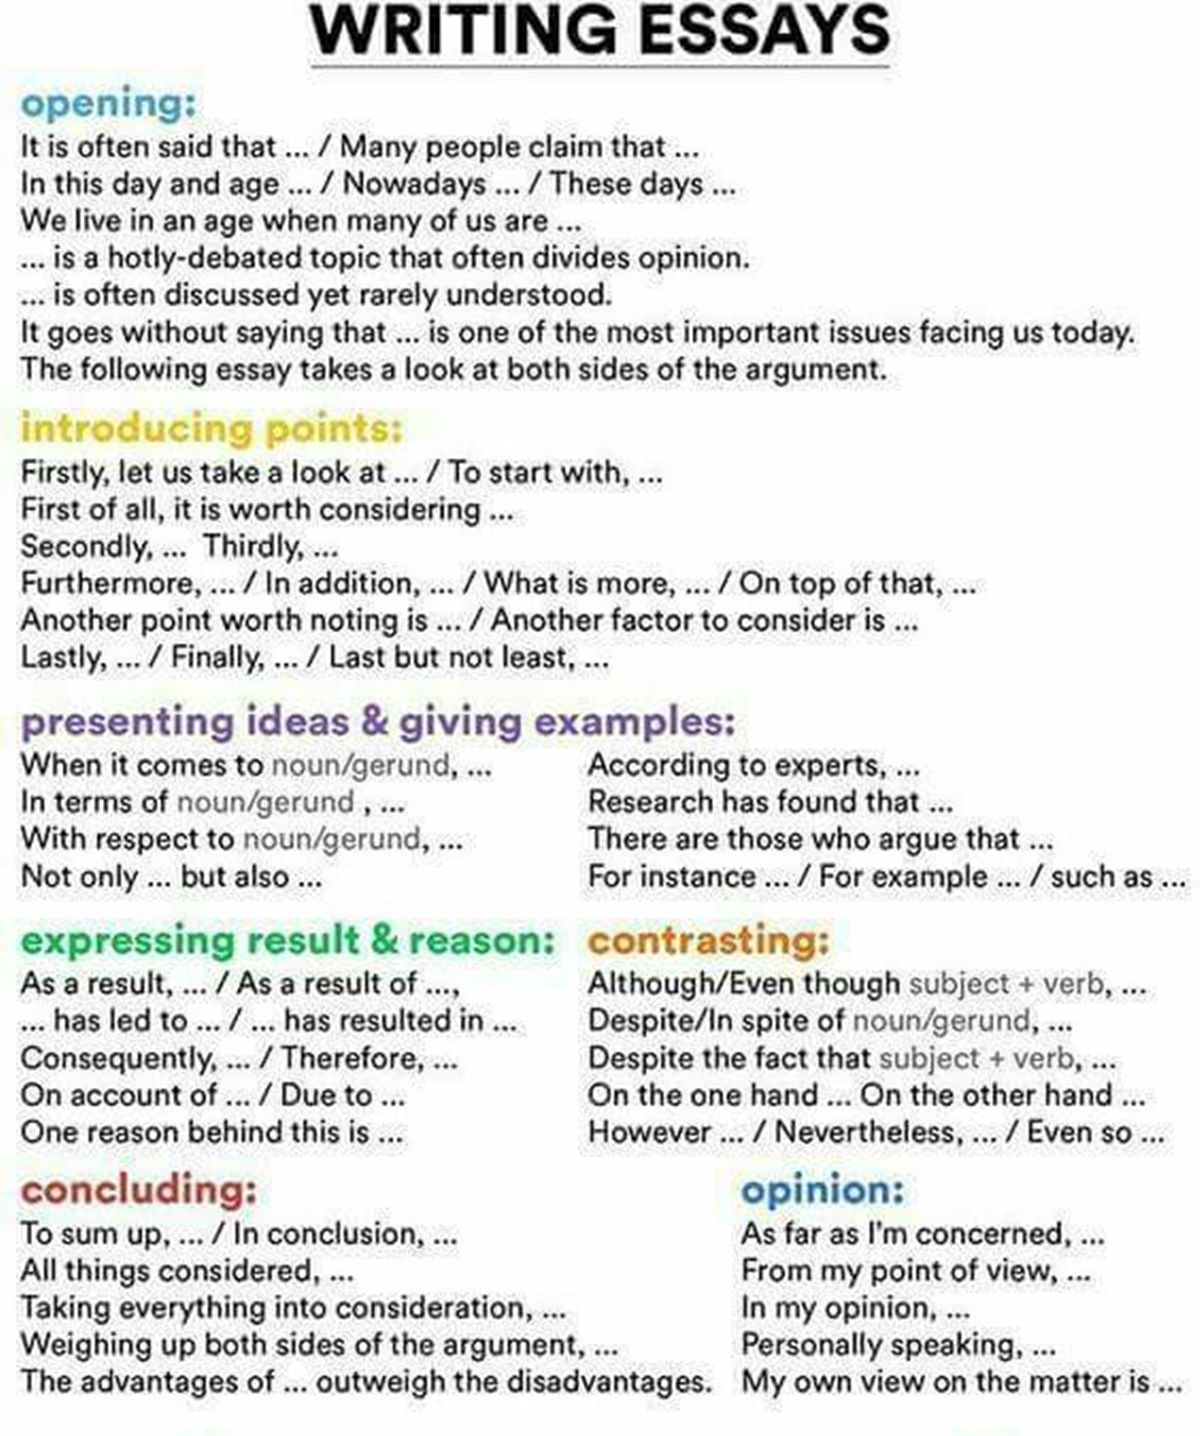 pin by chell rodica on learn english  essay writing skills english  pin by chell rodica on learn english  essay writing skills english  writing ielts writing english language essays also sample synthesis essays proposal essay topic ideas